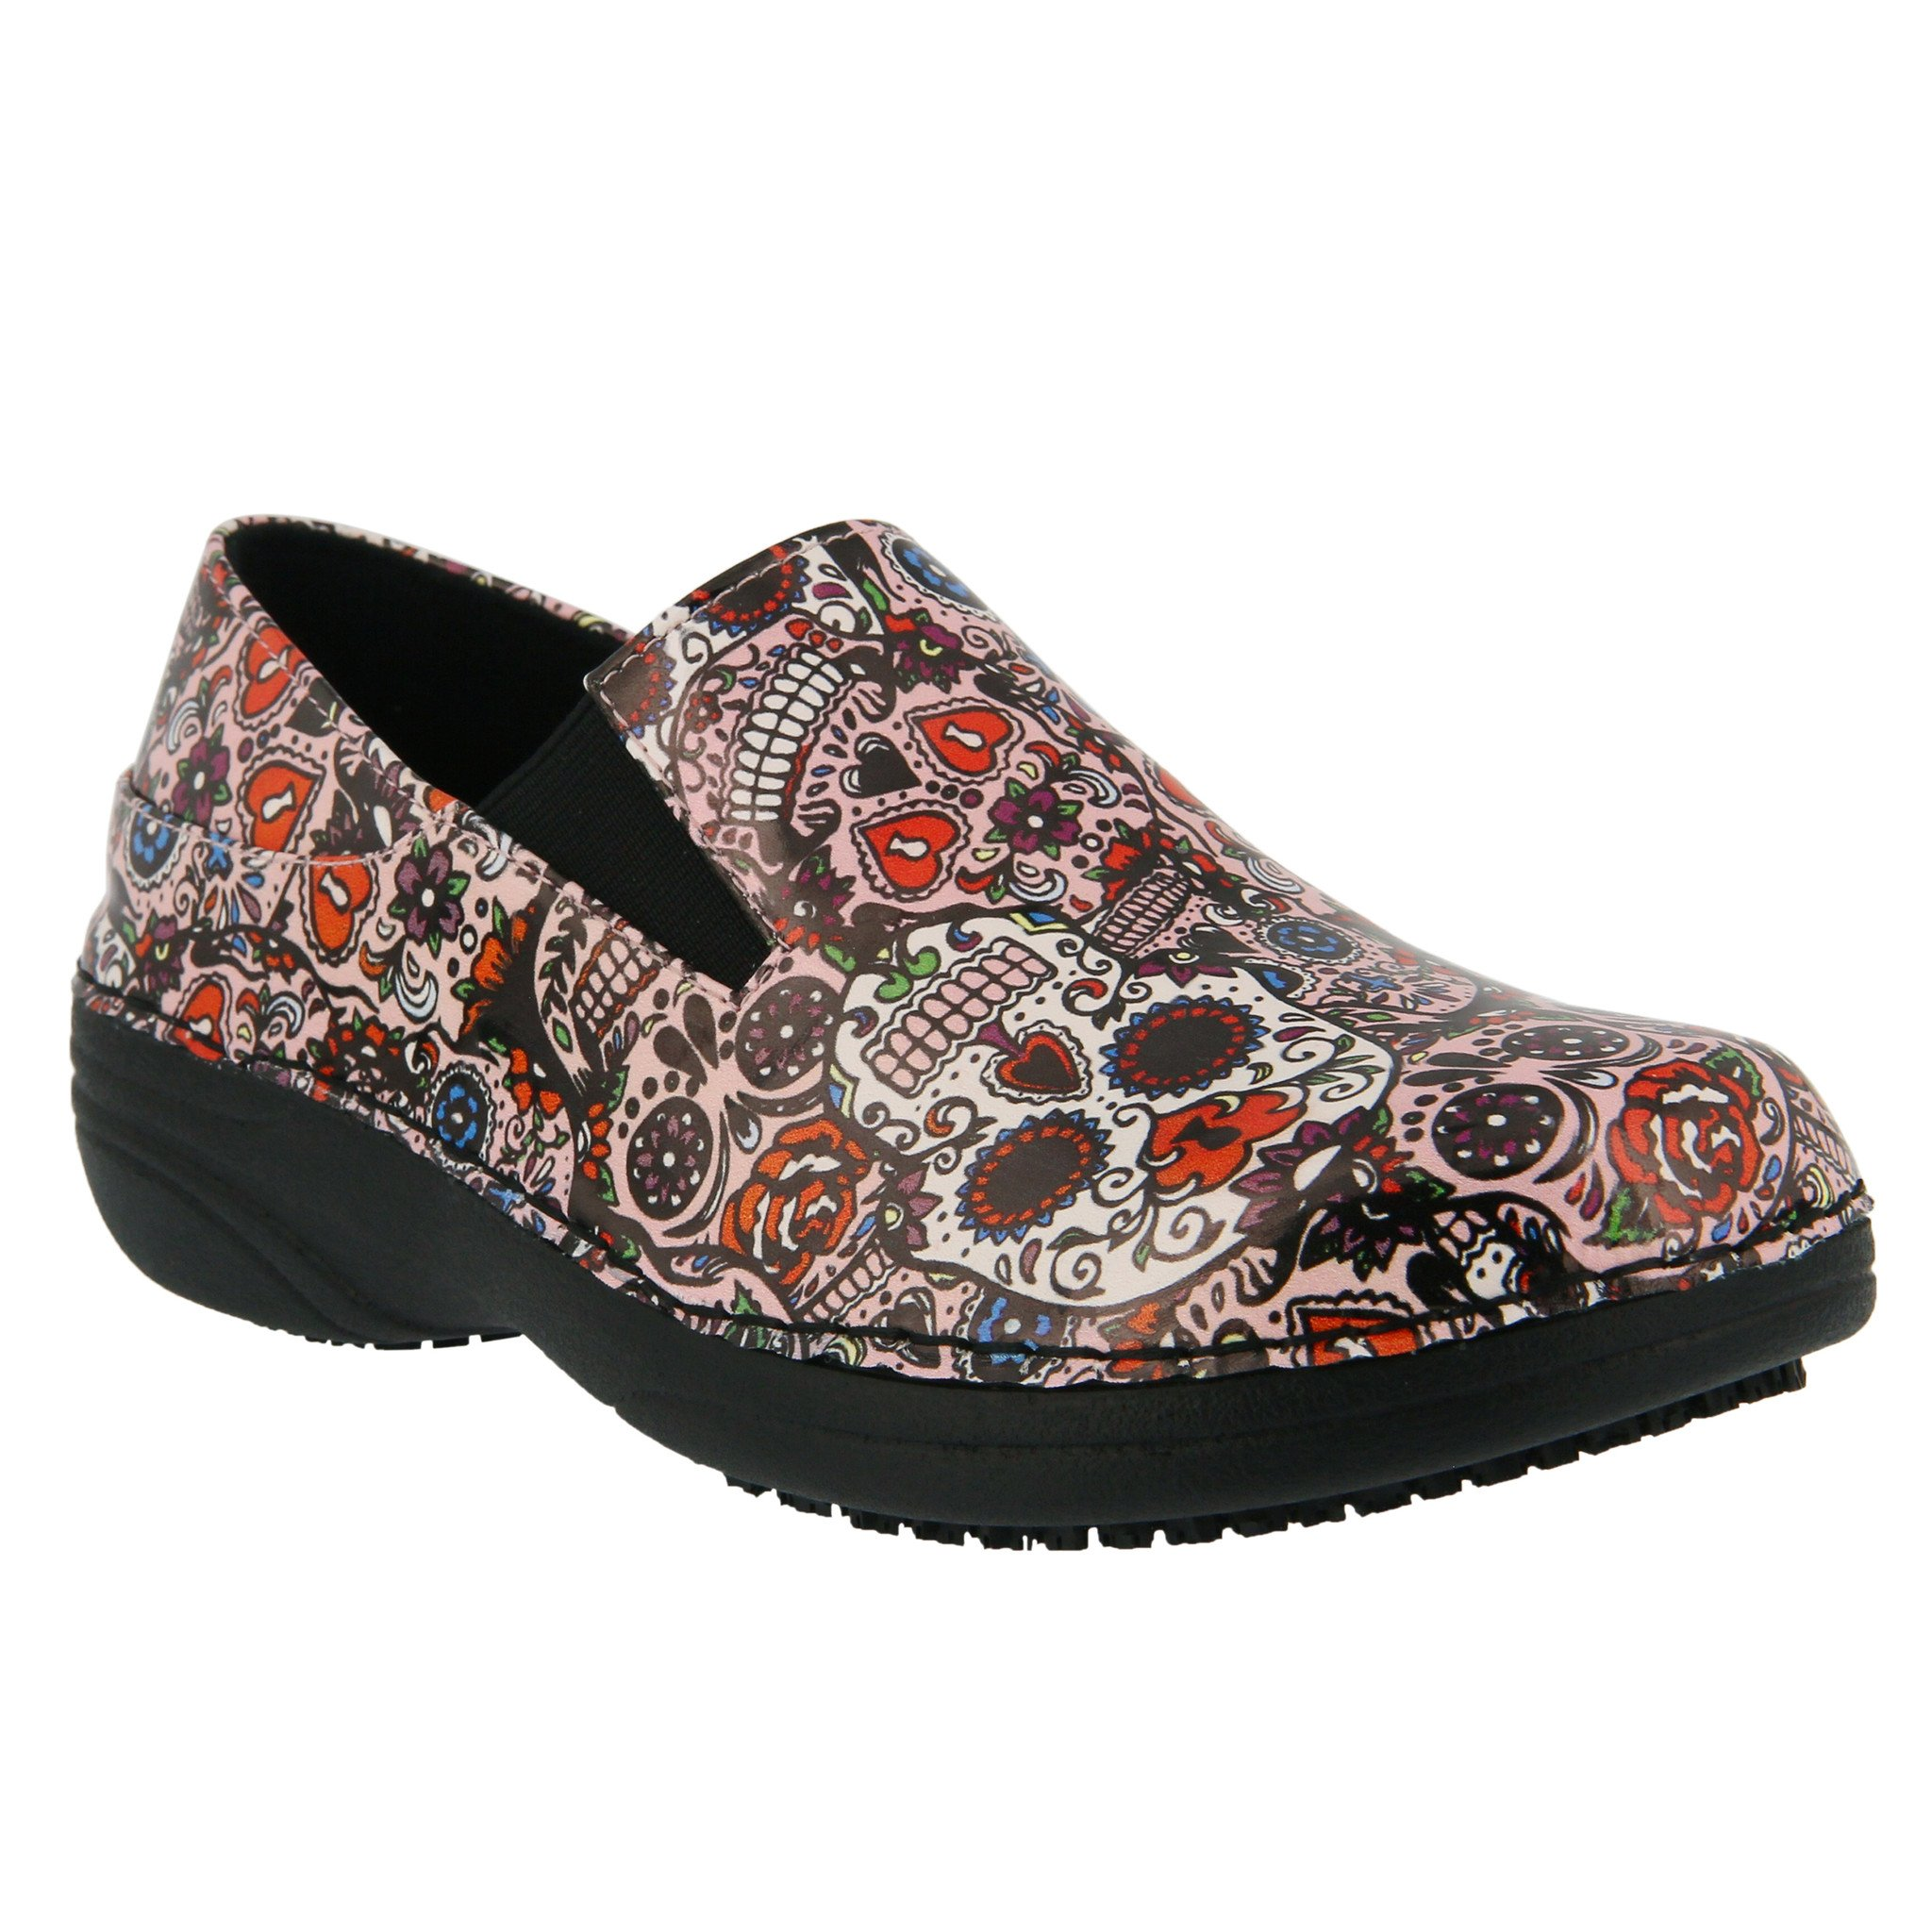 Spring Step Women's Ferrara Work Shoe,Pink Multi Skull,8 B(M) US